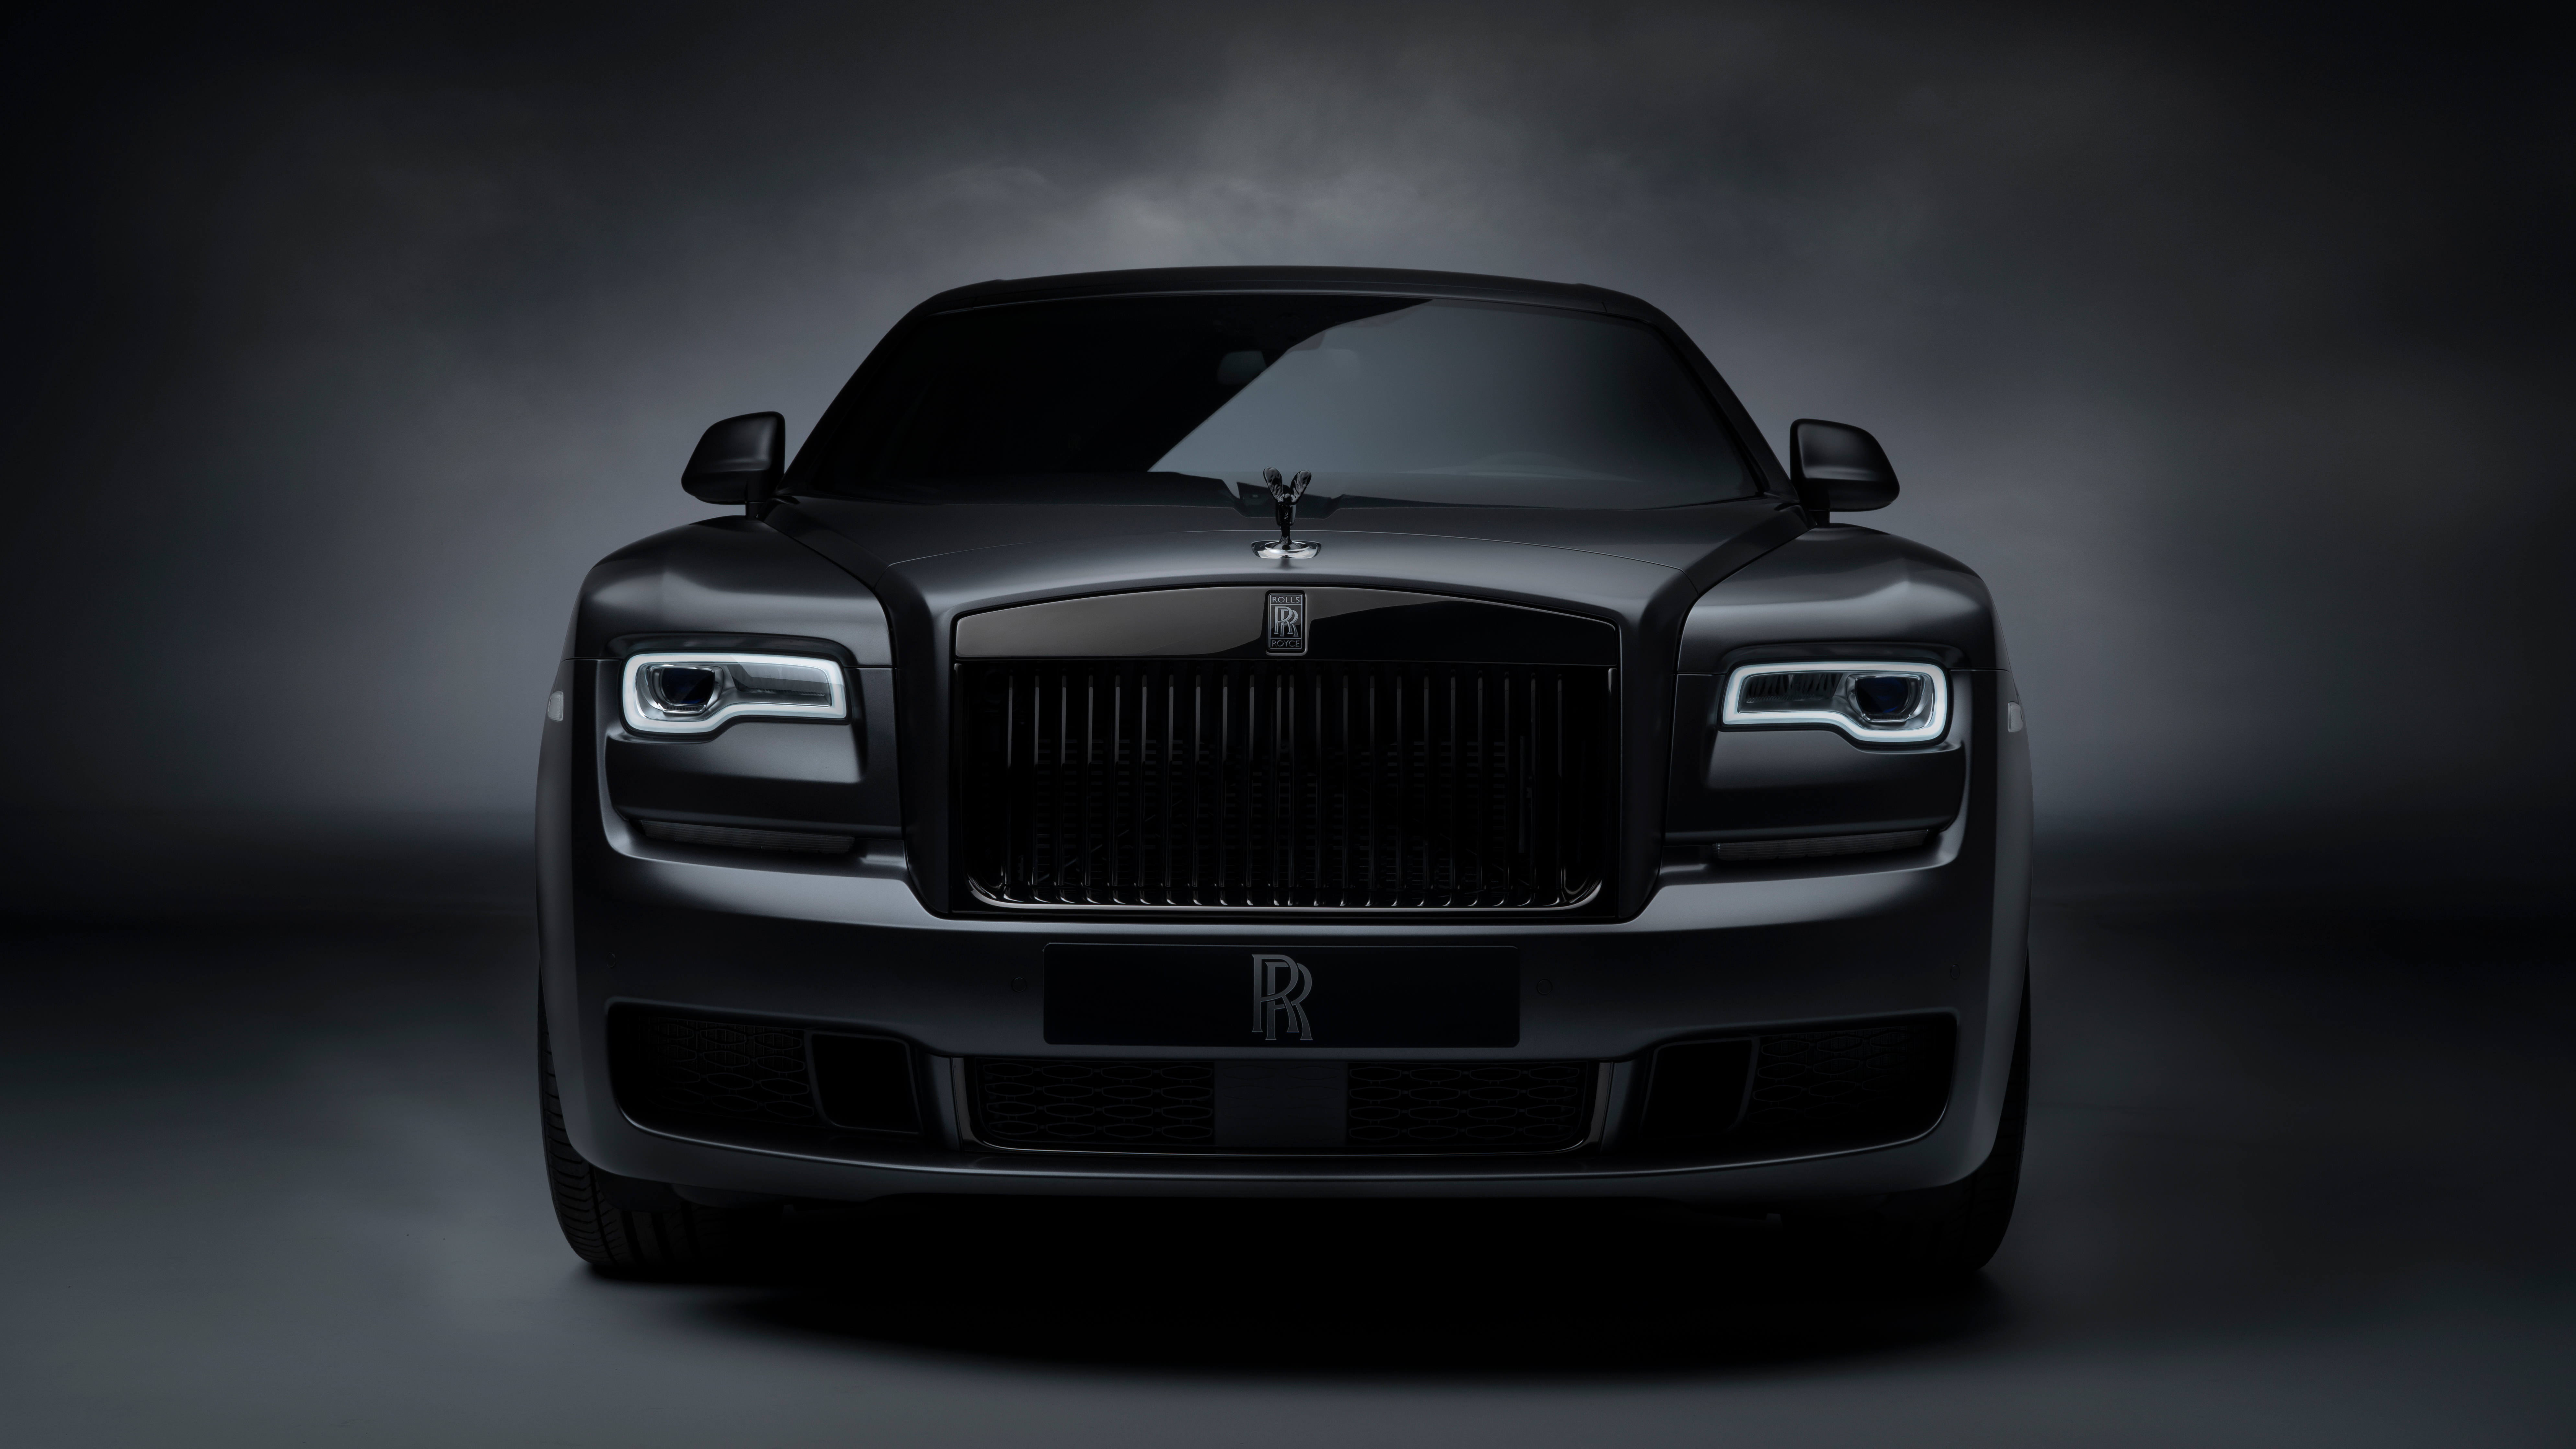 7680x4320 Rolls Royce Ghost Black Badge 2019 Front 8k Hd 4k Wallpapers Images Backgrounds Photos And Pictures